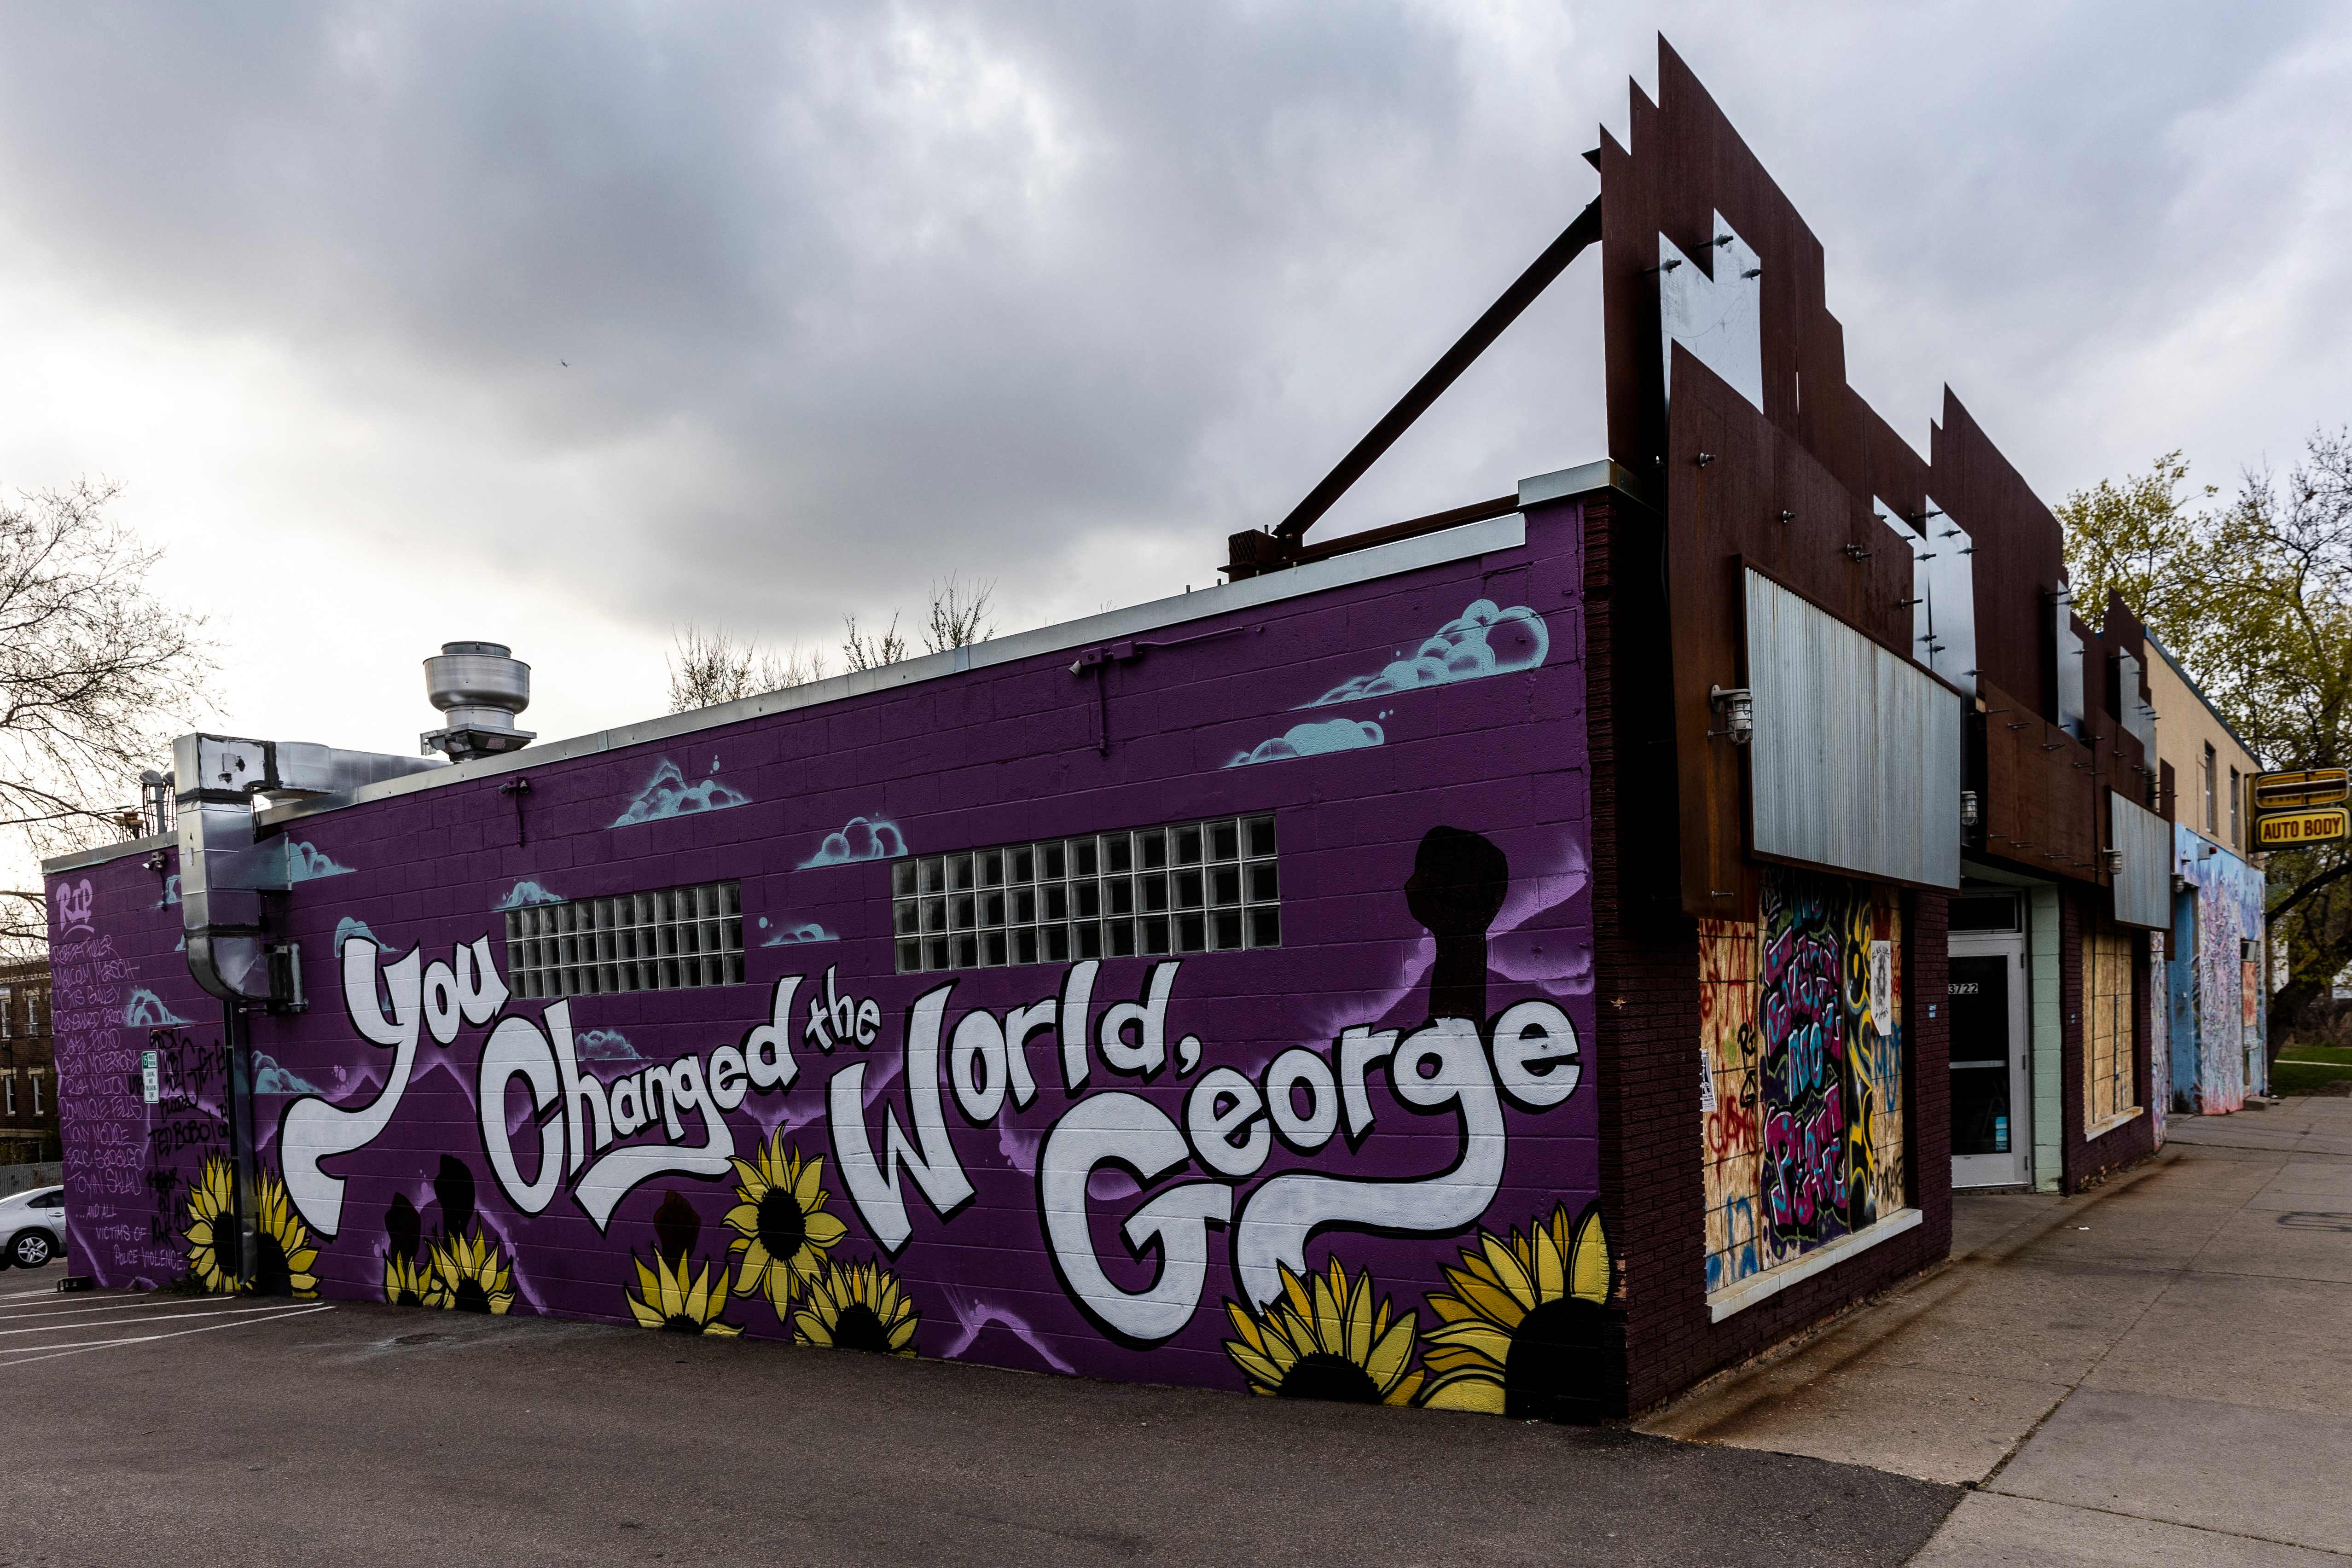 A mural is seen near George Floyd Square in Minneapolis, Minnesota on April 21, 2021, a day after Derek Chauvin was convicted of Floyd's murder.